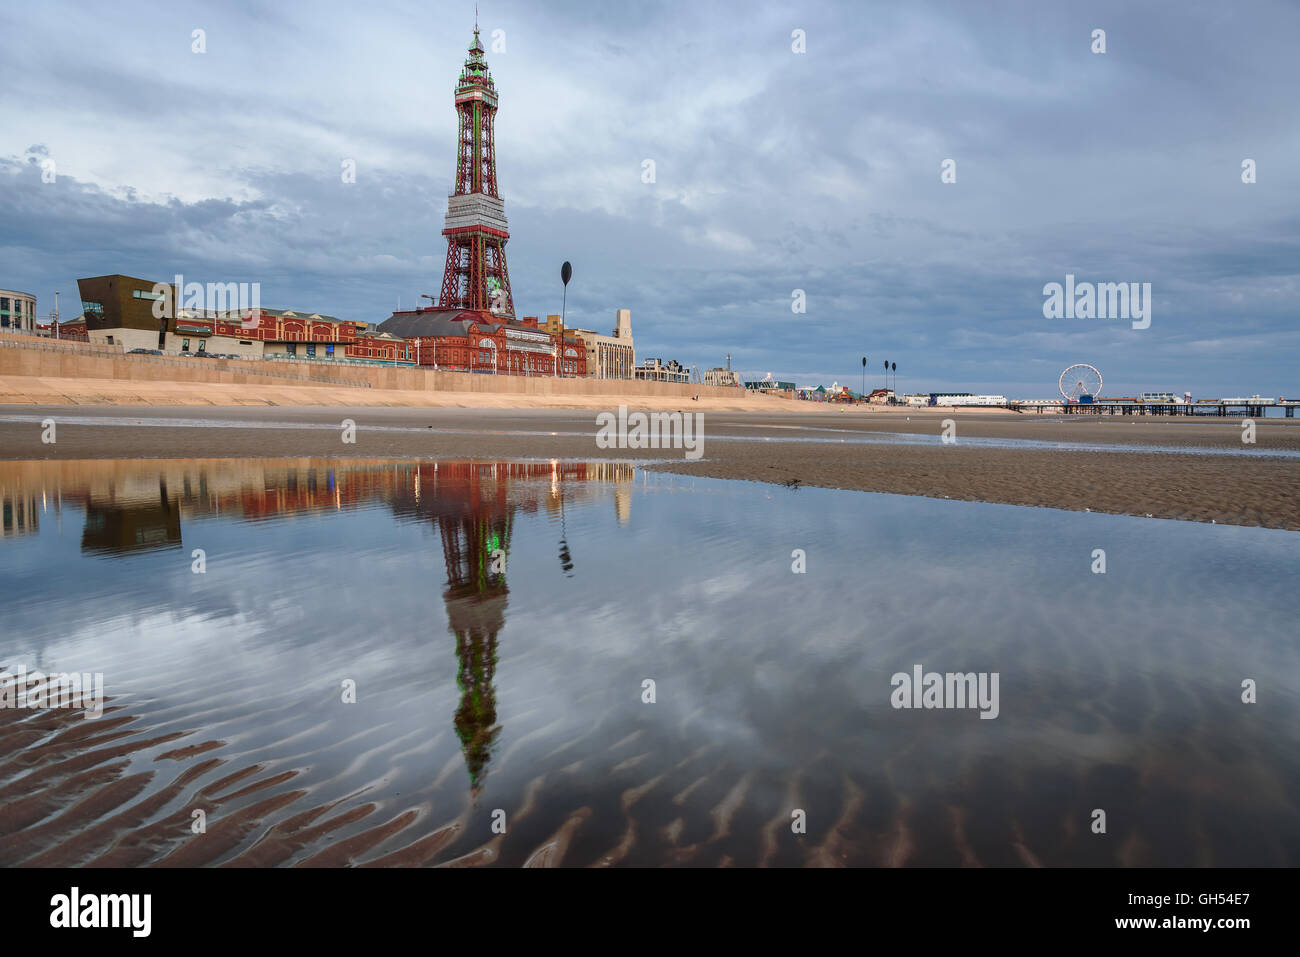 Reflection of Blackpool tower in the pond of water on the beach. - Stock Image